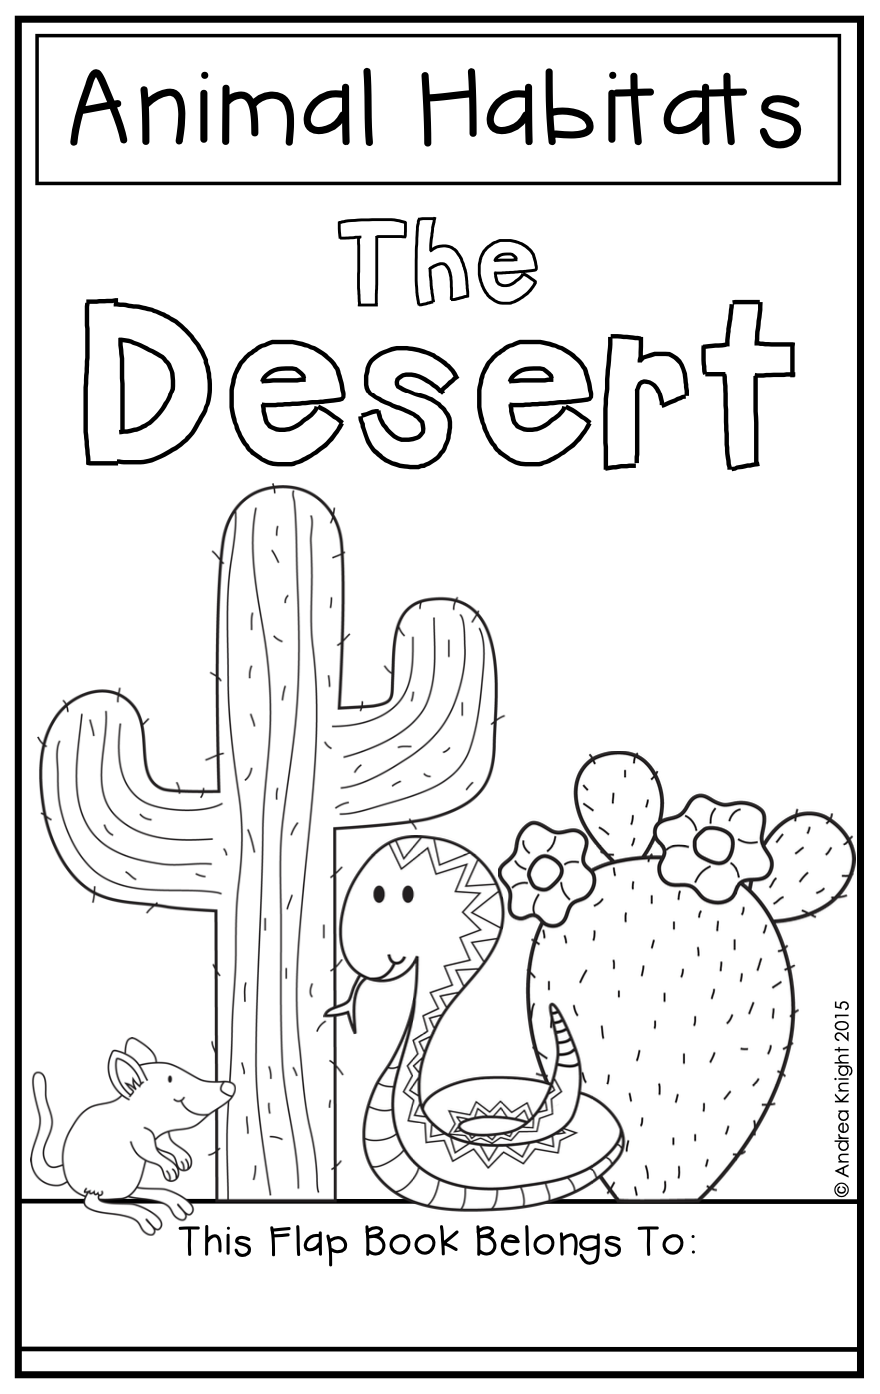 Animal Habitats The Desert {A Flap Book Project for